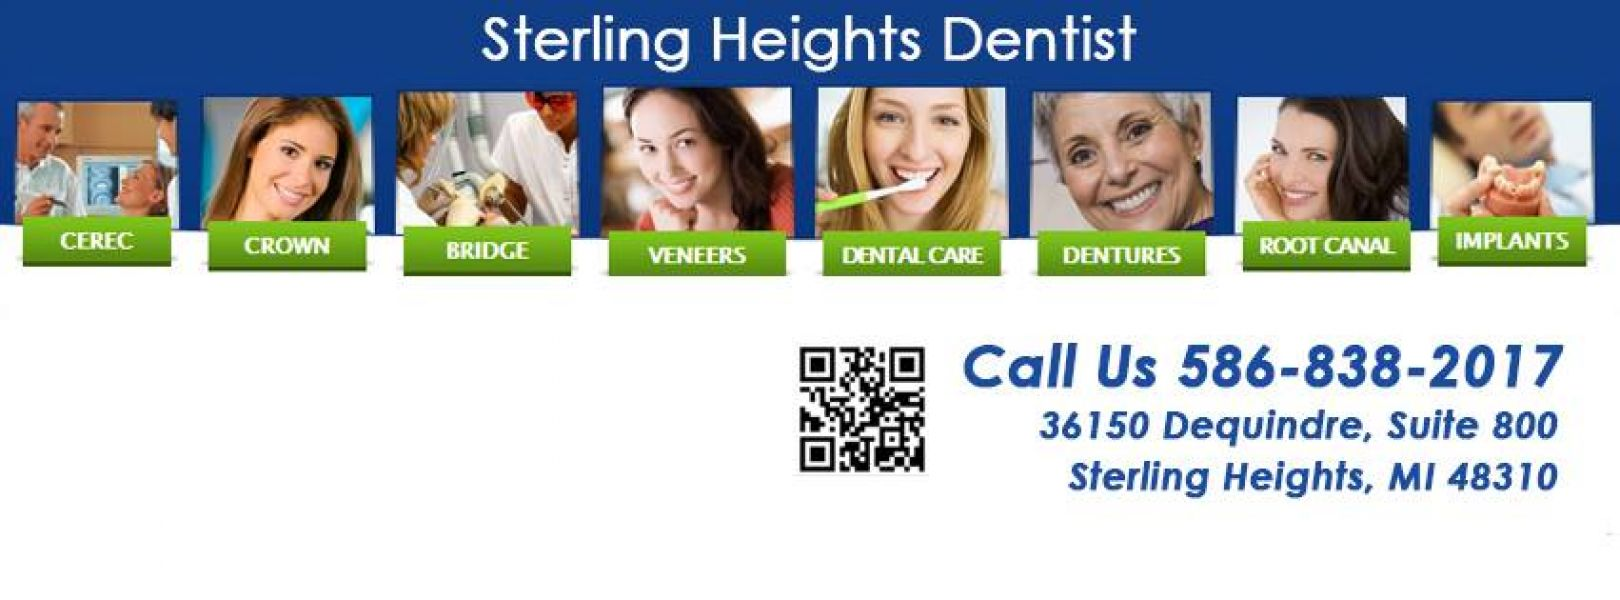 Affordable Ceramic Reconstruction Sterling Heights